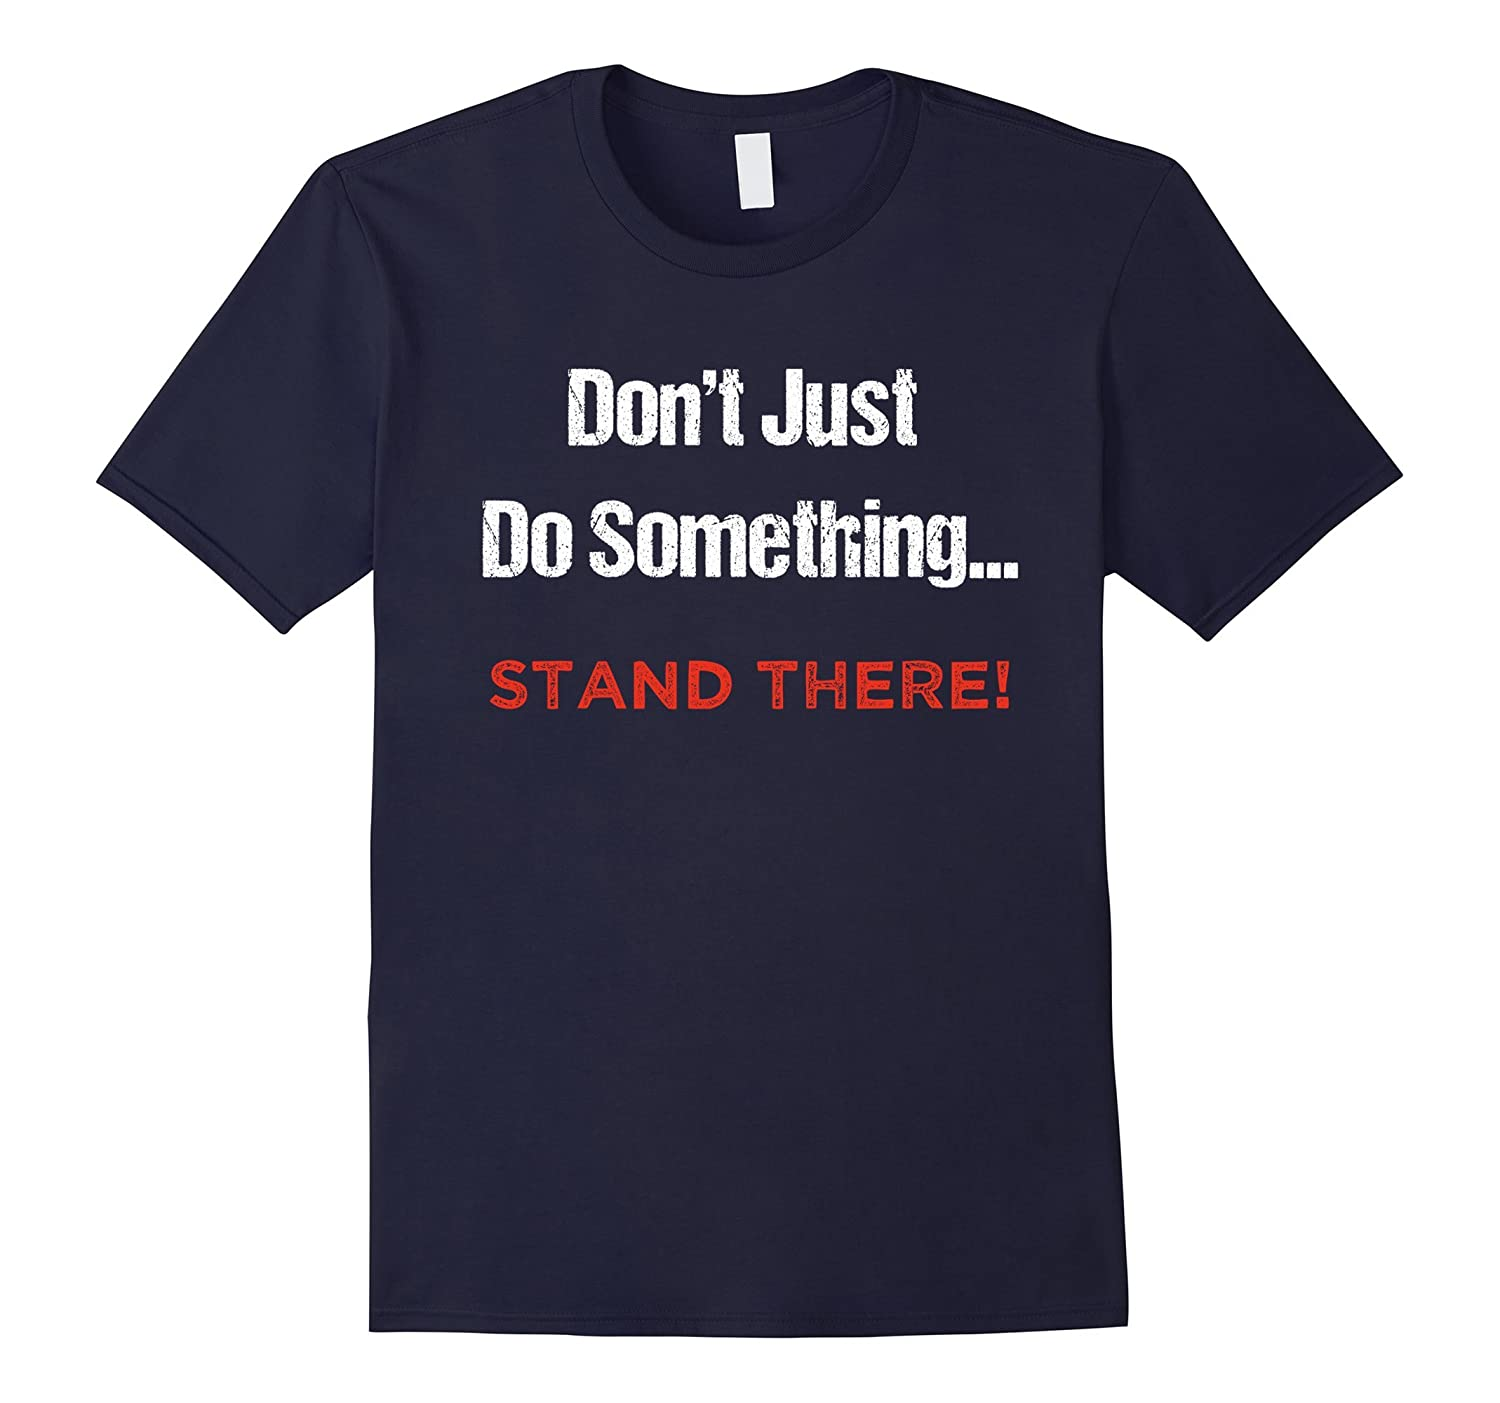 Don't Just Do Something, Stand There! |Funny TectoGizmo Tees-T-Shirt